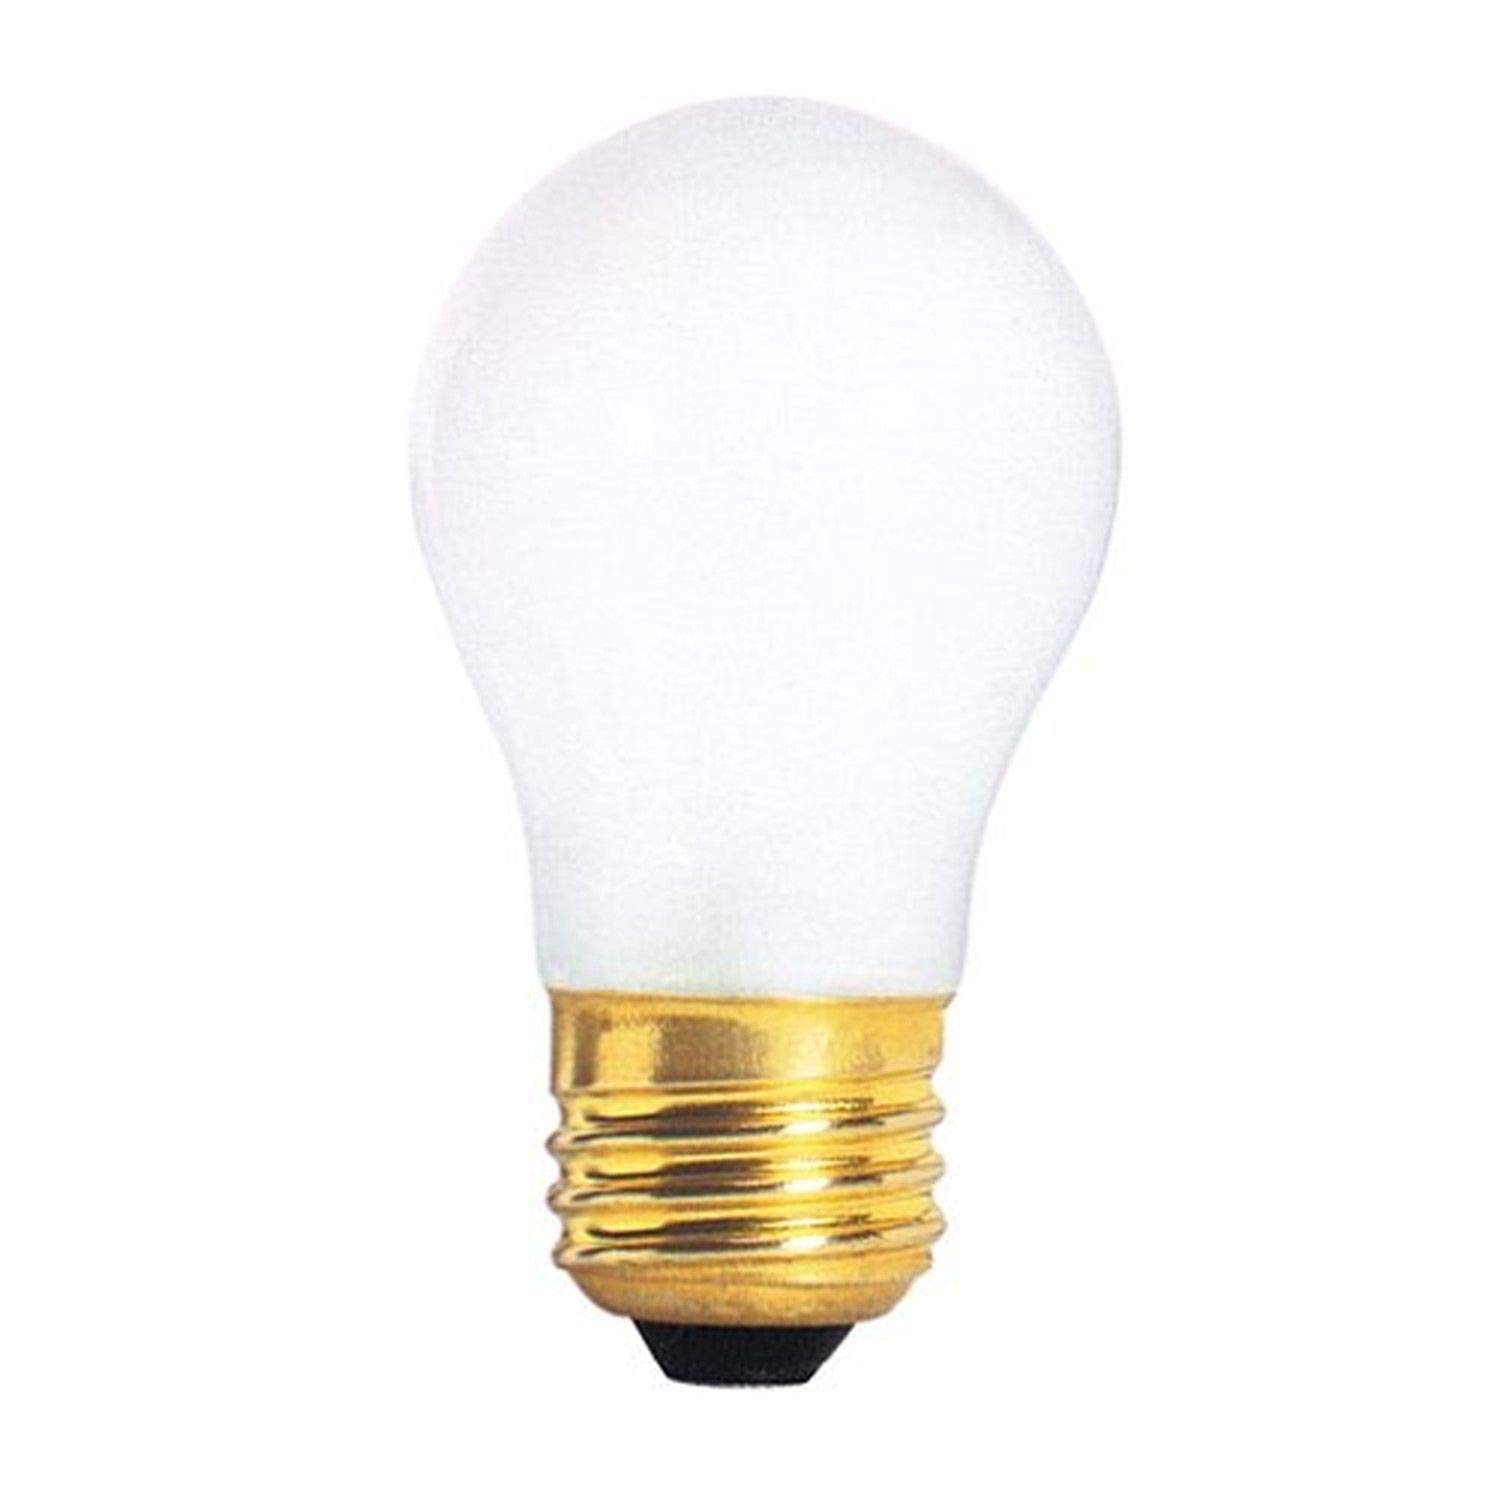 HC Lighting - 120-130V 15W Line Voltage Frosted Appliance and Household A15 Style Incandescent Light bulb (10/PK) (15 Watt)